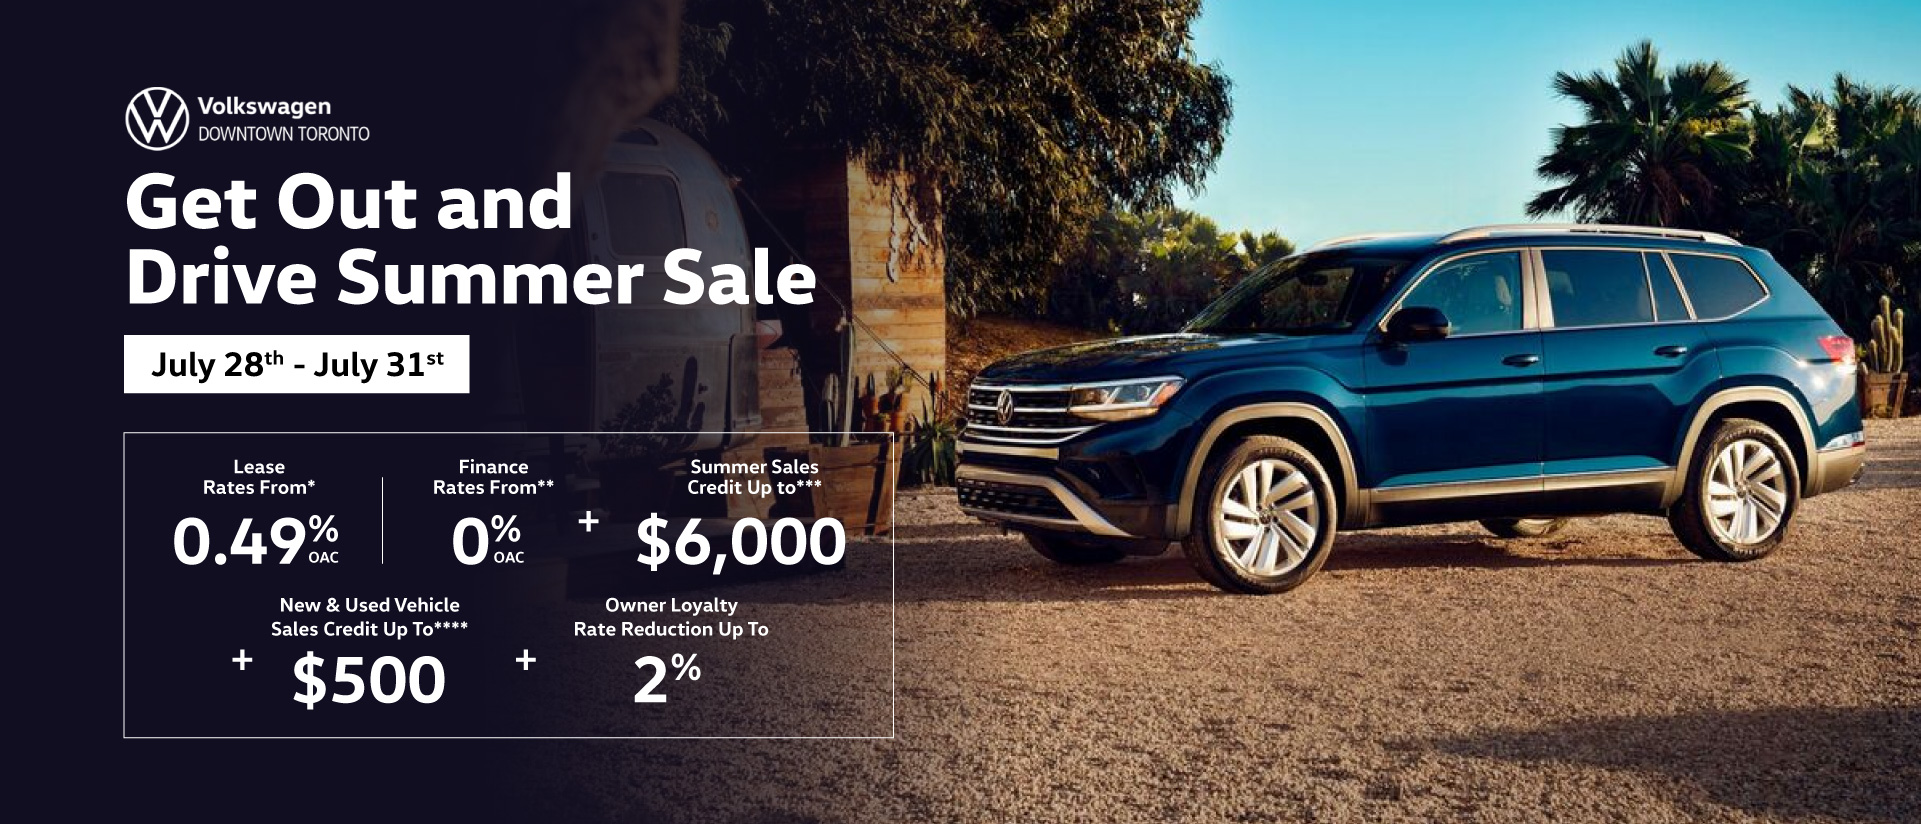 646472489 Vw Downtown Toronto Get Out And Drive Summer Sale Toaster1 Mobile 1920x824